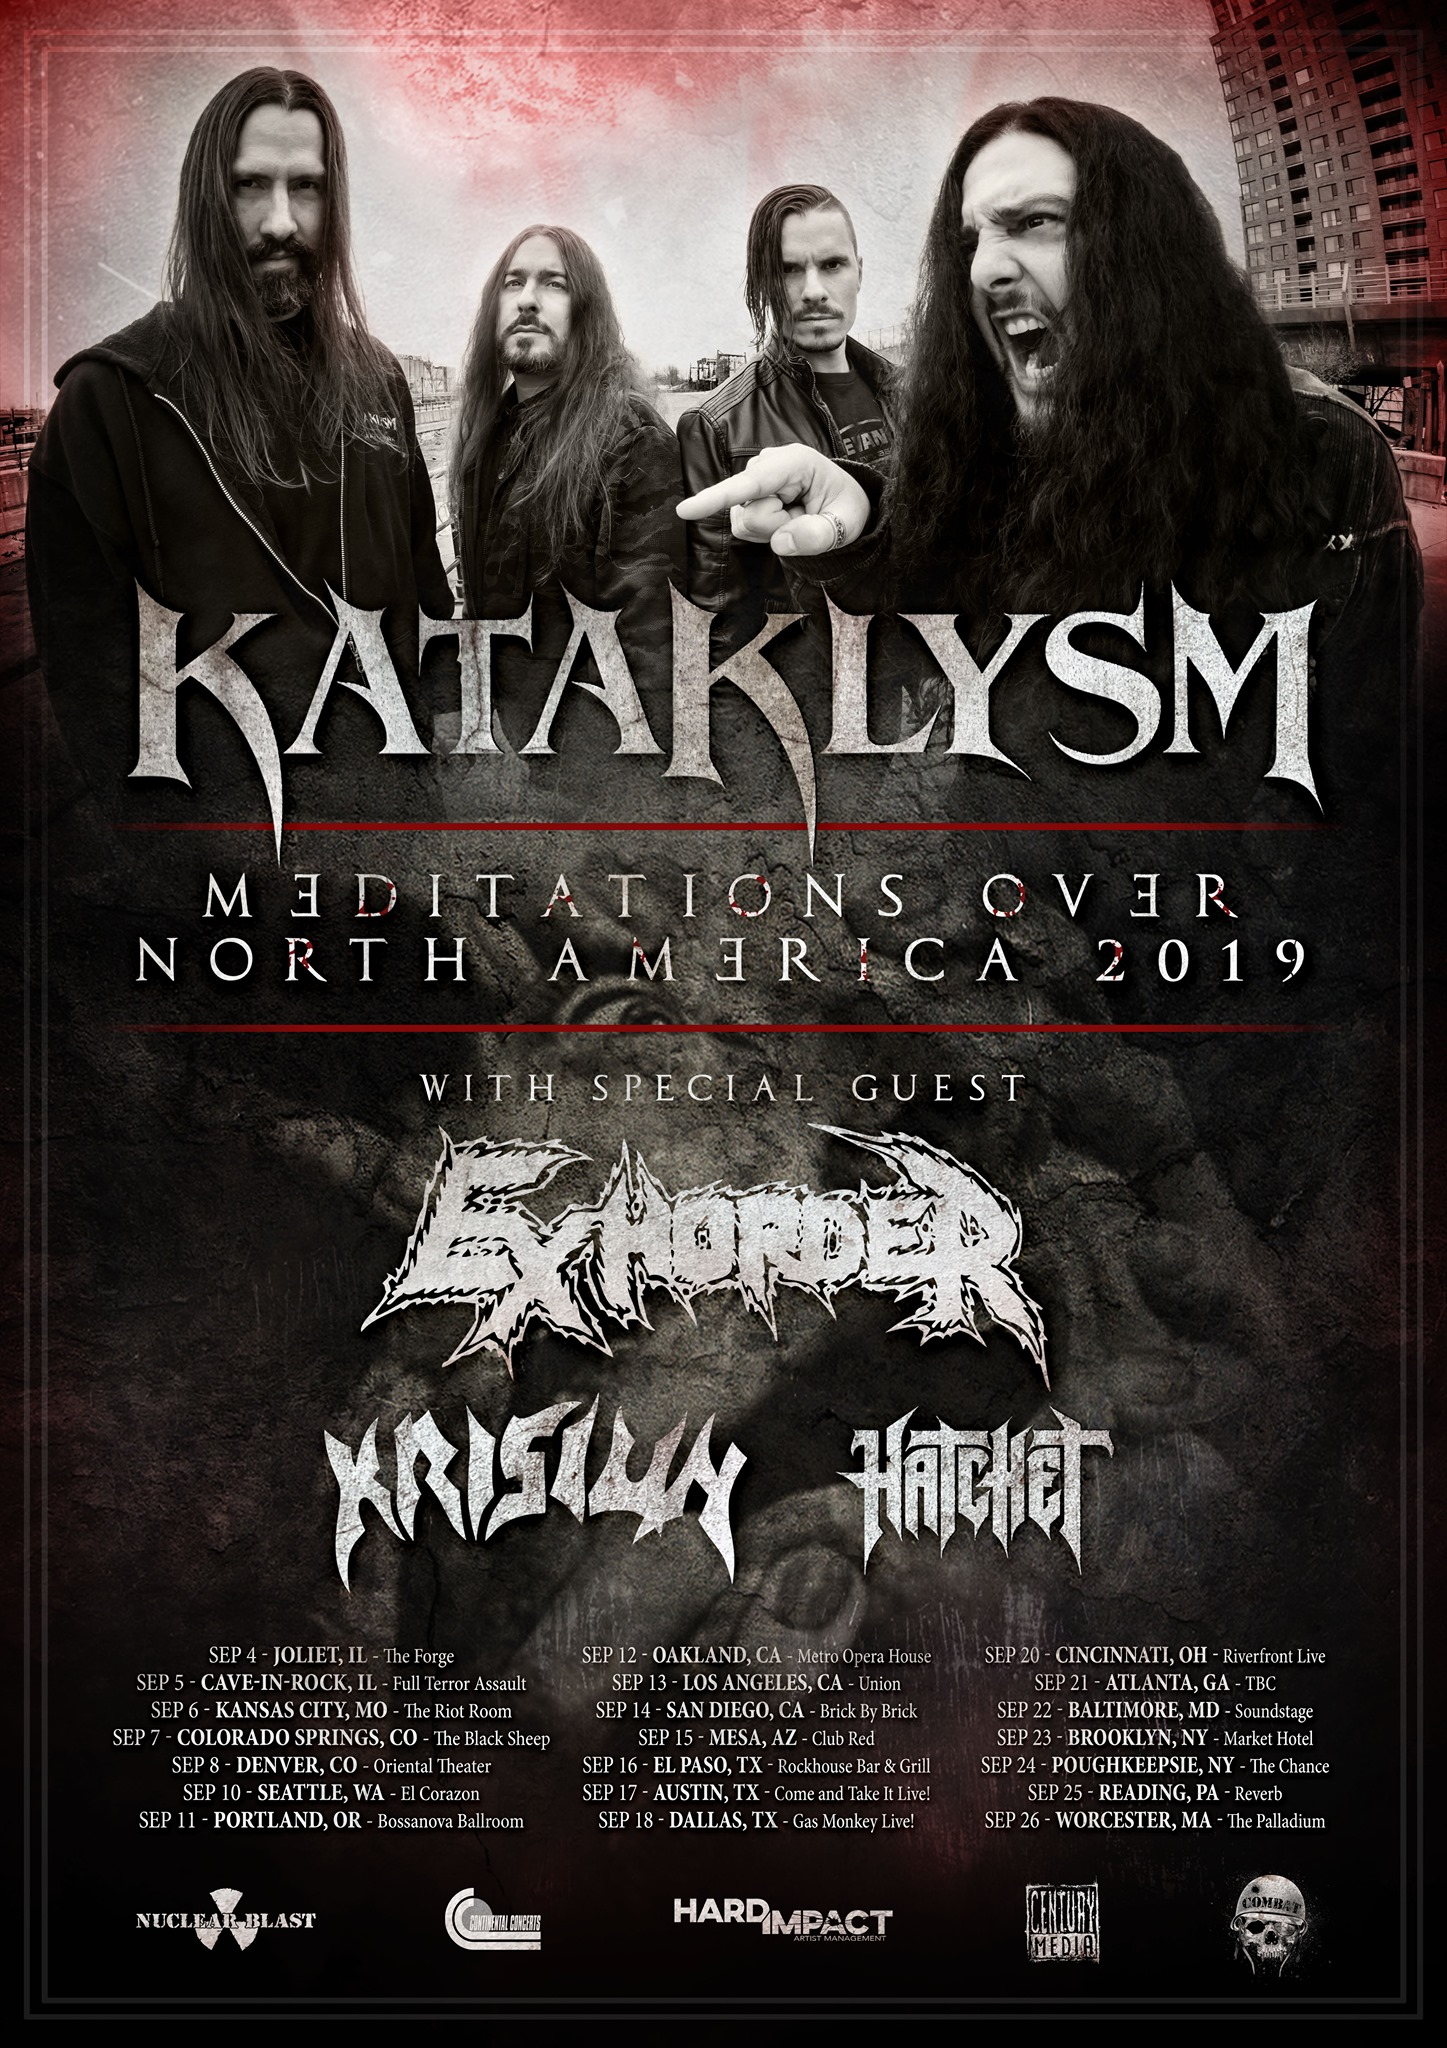 EXHORDER  North American Tour Dates (w/ KATAKLYSM ):  Sep 4 – Joliet, IL – The Forge Sep 5 – Cave-In-Rock, IL – Full Terror Assault Sep 6 – Kansas City, MO – The Riot Room Sep 7 – Colorado Springs, CO – The Black Sheep Sep 8 – Denver, CO – Oriental Theater Sep 10 – Seattle, WA – El Corazon Sep 11 – Portland, OR – Bossanova Ballroom Sep 12 – Oakland, CA – Metro Opera House Sep 13 – Los Angeles, CA – Union Sep 14 – San Diego, CA – Brick By Brick Sep 15 – Mesa, AZ – Club Red Sep 16 – El Paso, TX – Rockhouse Bar & Grill Sep 17 – Austin, TX – Come and Take It Live! Sep 18 – Dallas, TX – Gas Monkey Live! Sep 20 – Cincinnati, OH – Riverfront Live Sep 21 – Atlanta, GA – The Masquerade Sep 22 – Baltimore, MD – Soundstage Sep 23 – Brooklyn, NY – Market Hotel Sep 24 – Poughkeepsie, NY – The Chance Sep 25 – Reading, PA – Reverb Sep 26 – Worcester, MA – The Palladium